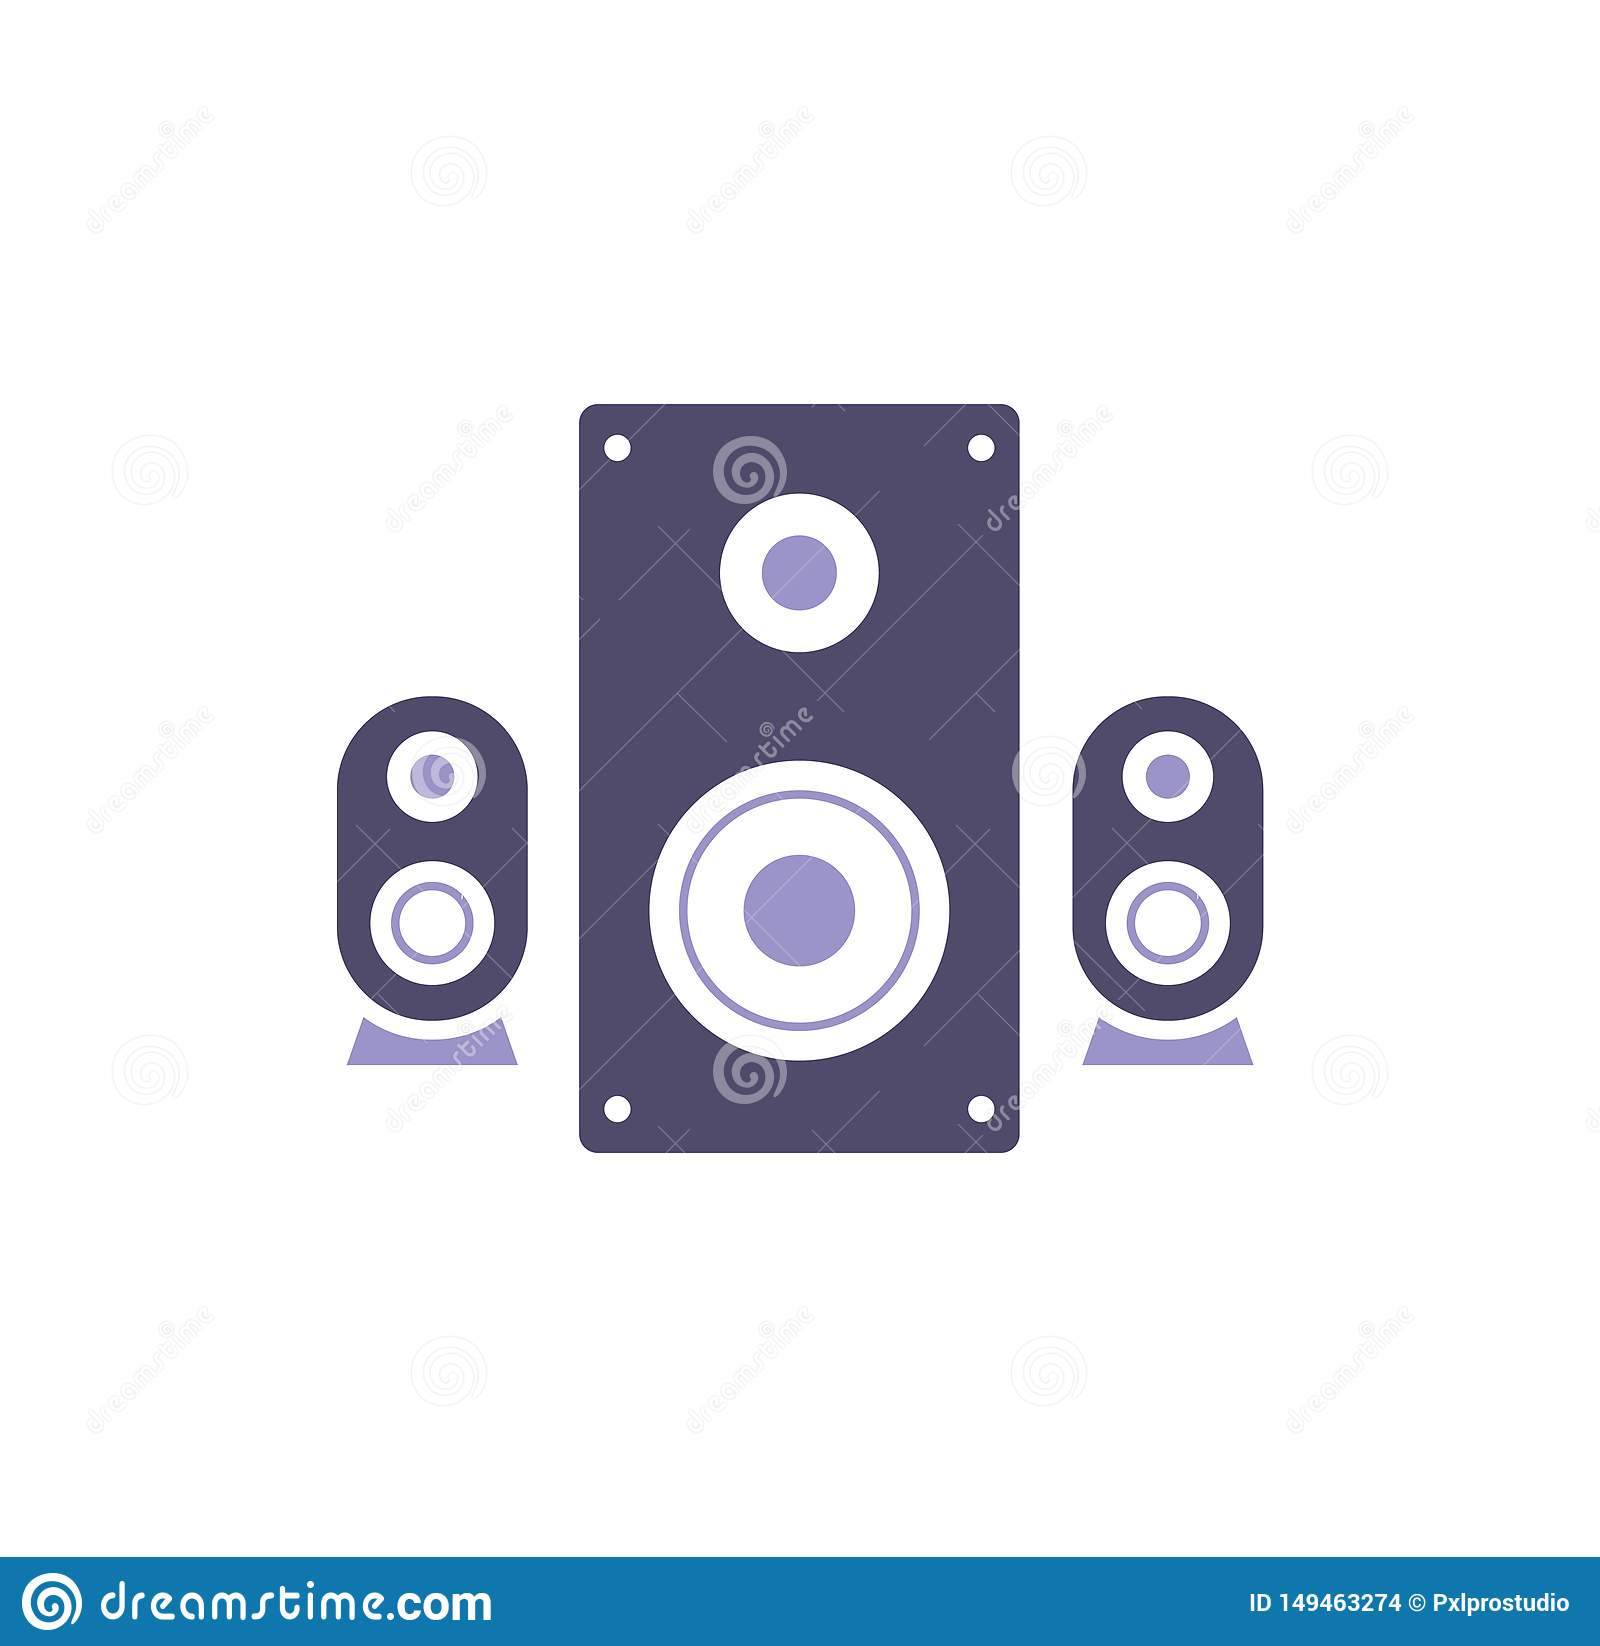 Computer hardware icon on background for graphic and web design. Simple illustration. Internet concept symbol for